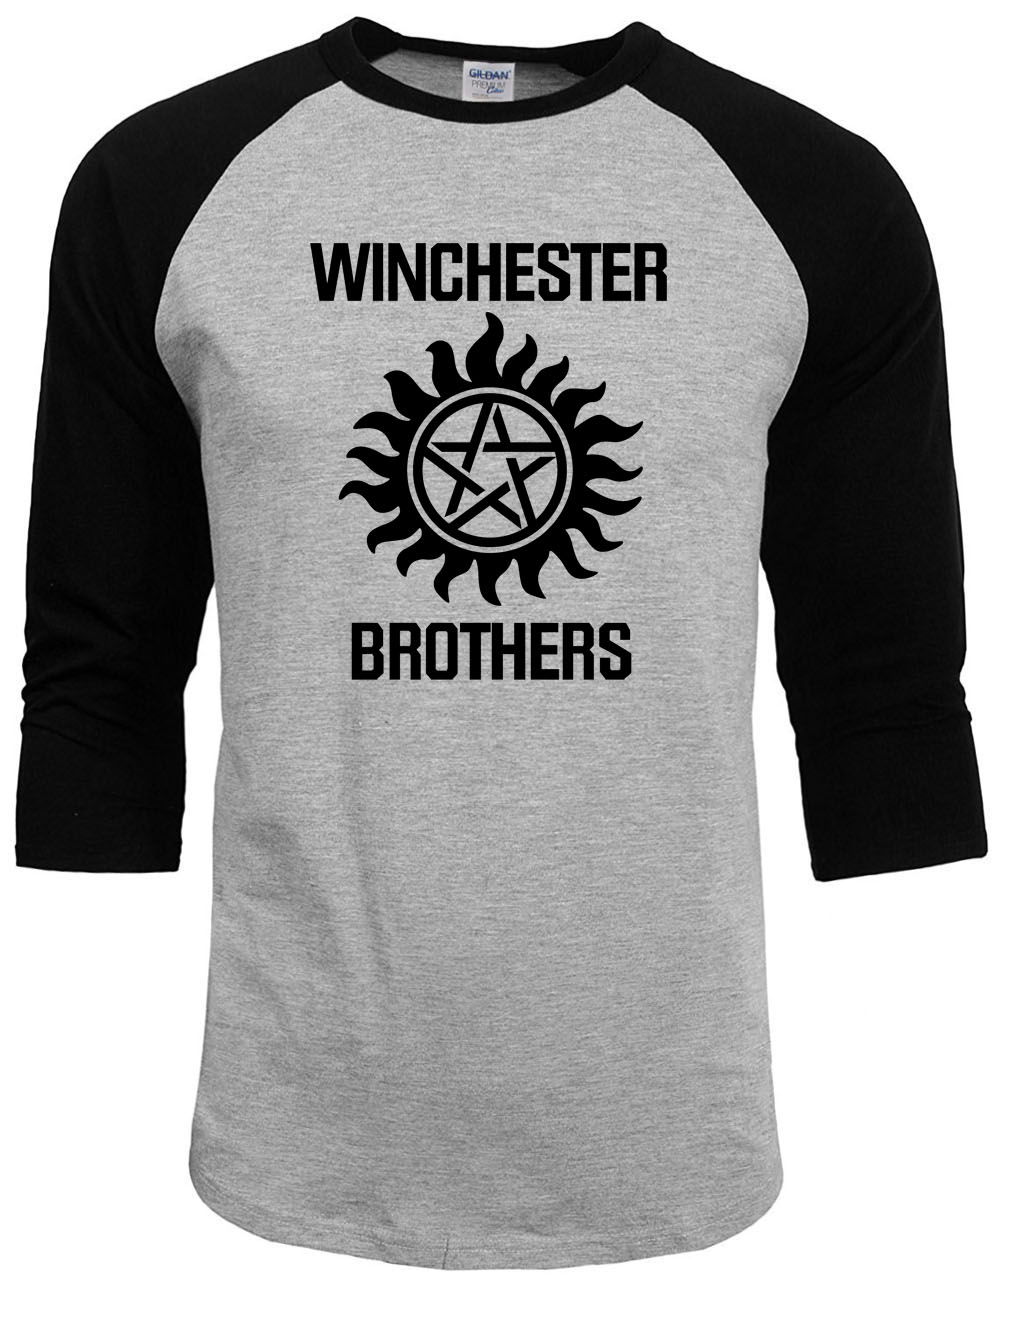 595694066e Supernatural tops tee shirts 2019 summer autumn raglan sleeve funny  crossfit winchester brothers t shirts men streetwear homme